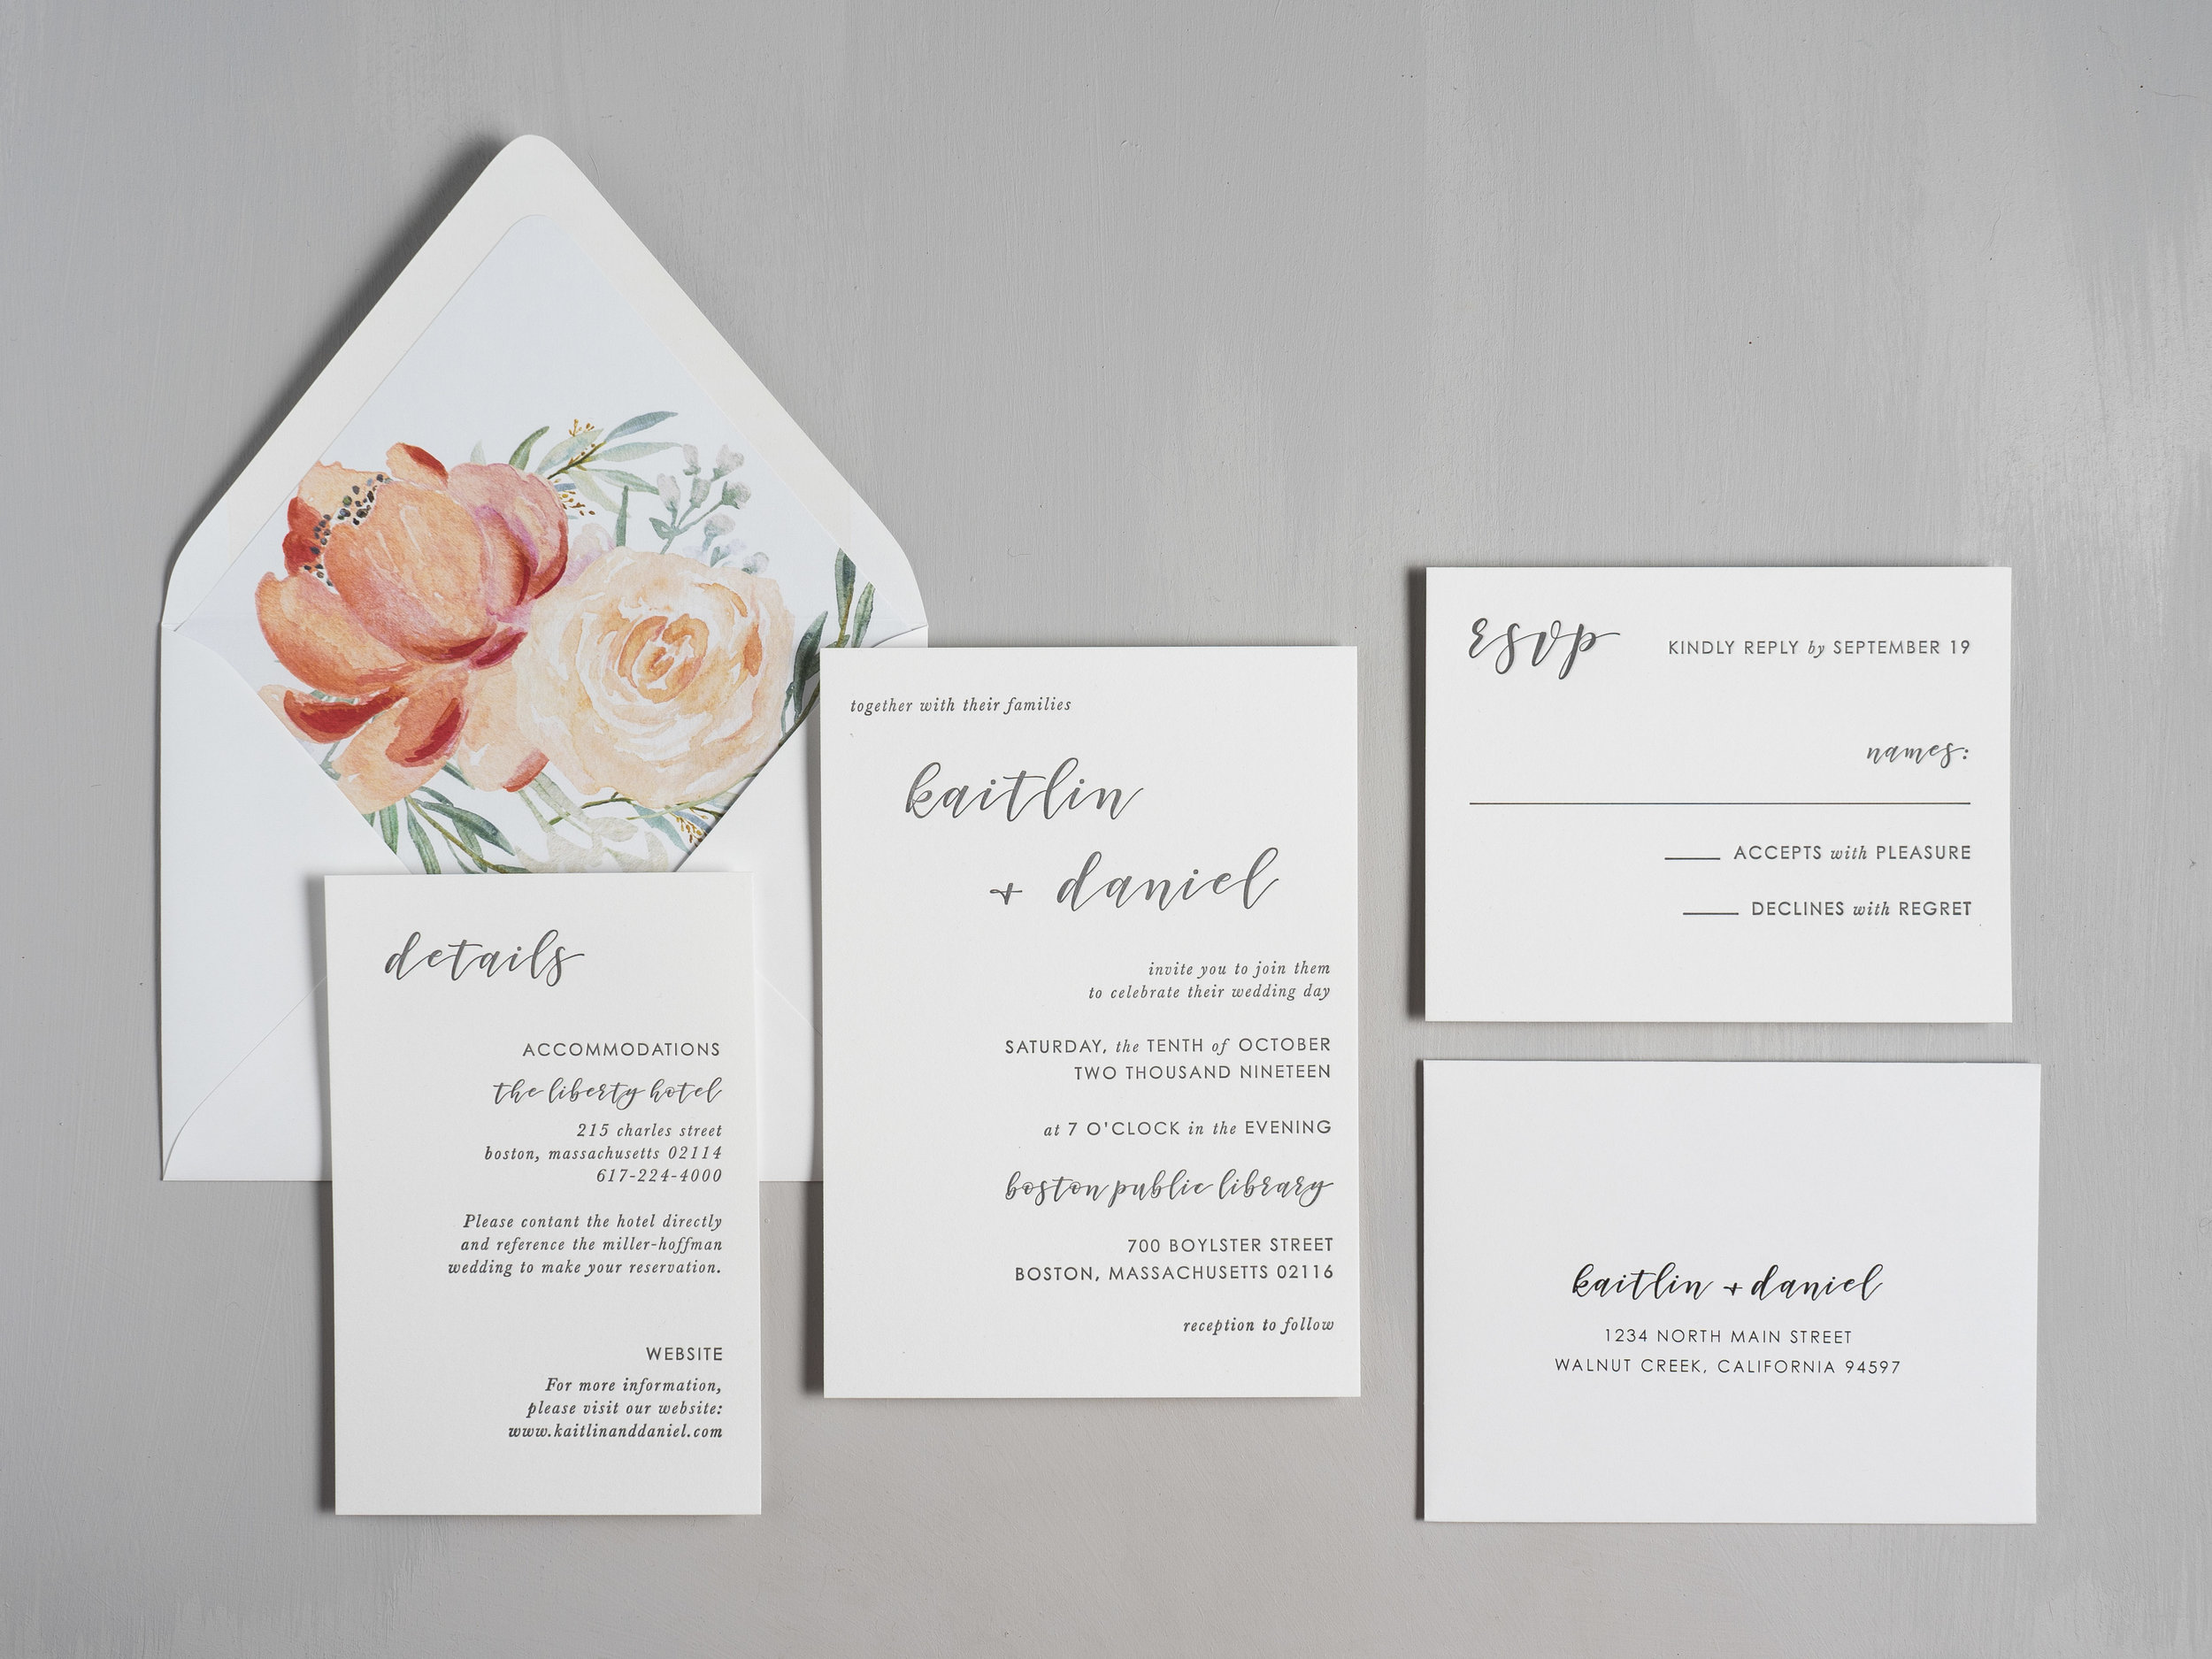 Simple Modern Script V2 Letterpress Wedding Invitation by Just Jurf